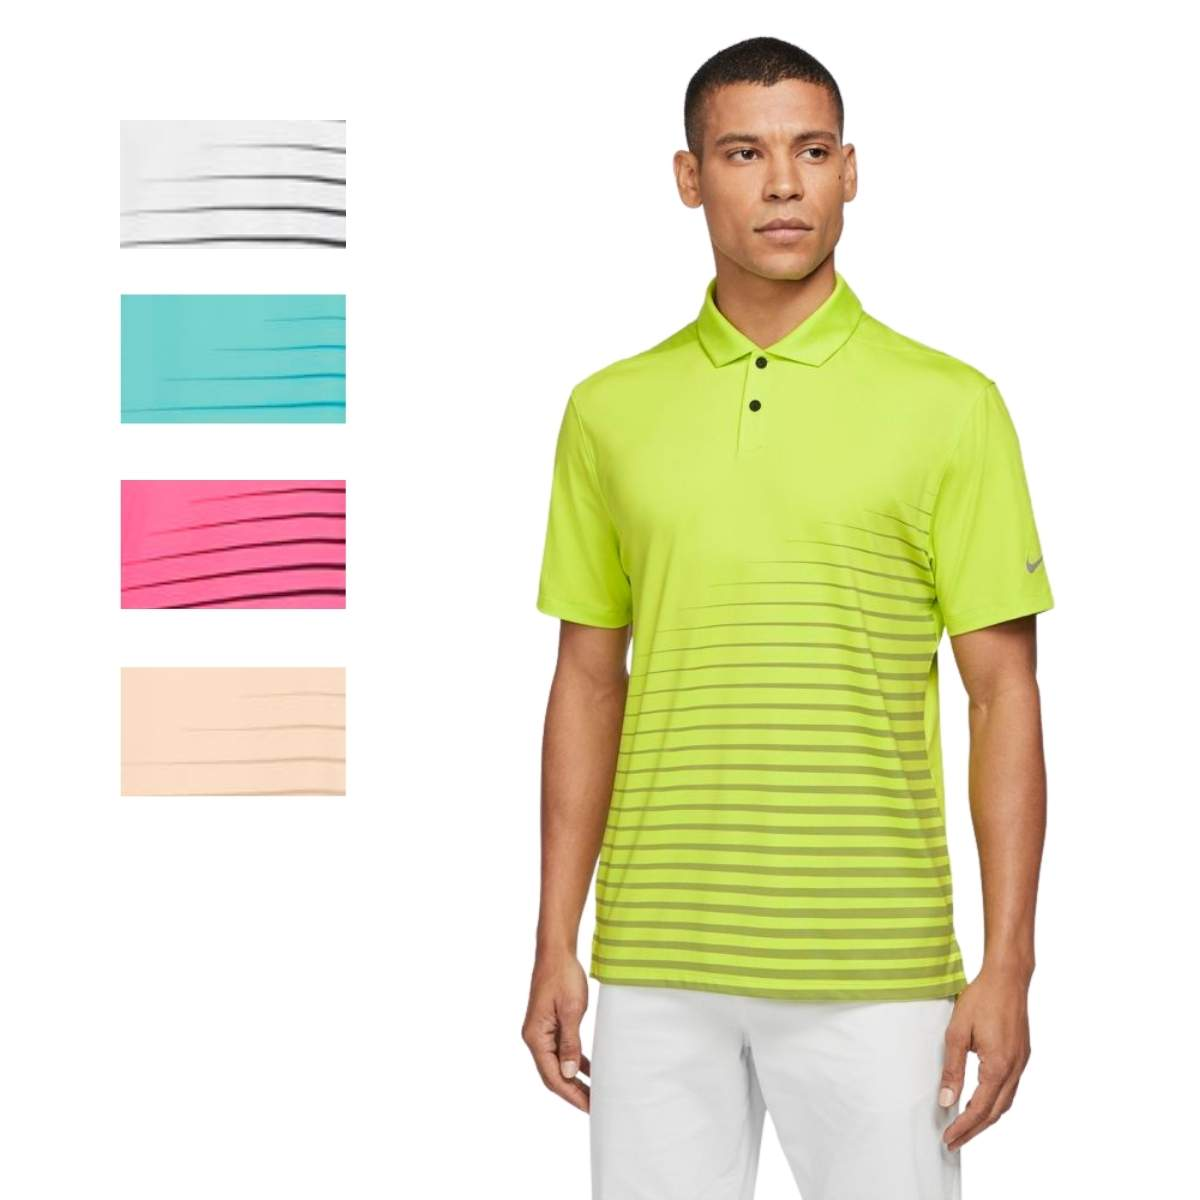 Nike Men's 2021 Dri-Fit Vapor Graphic Stripe Polo